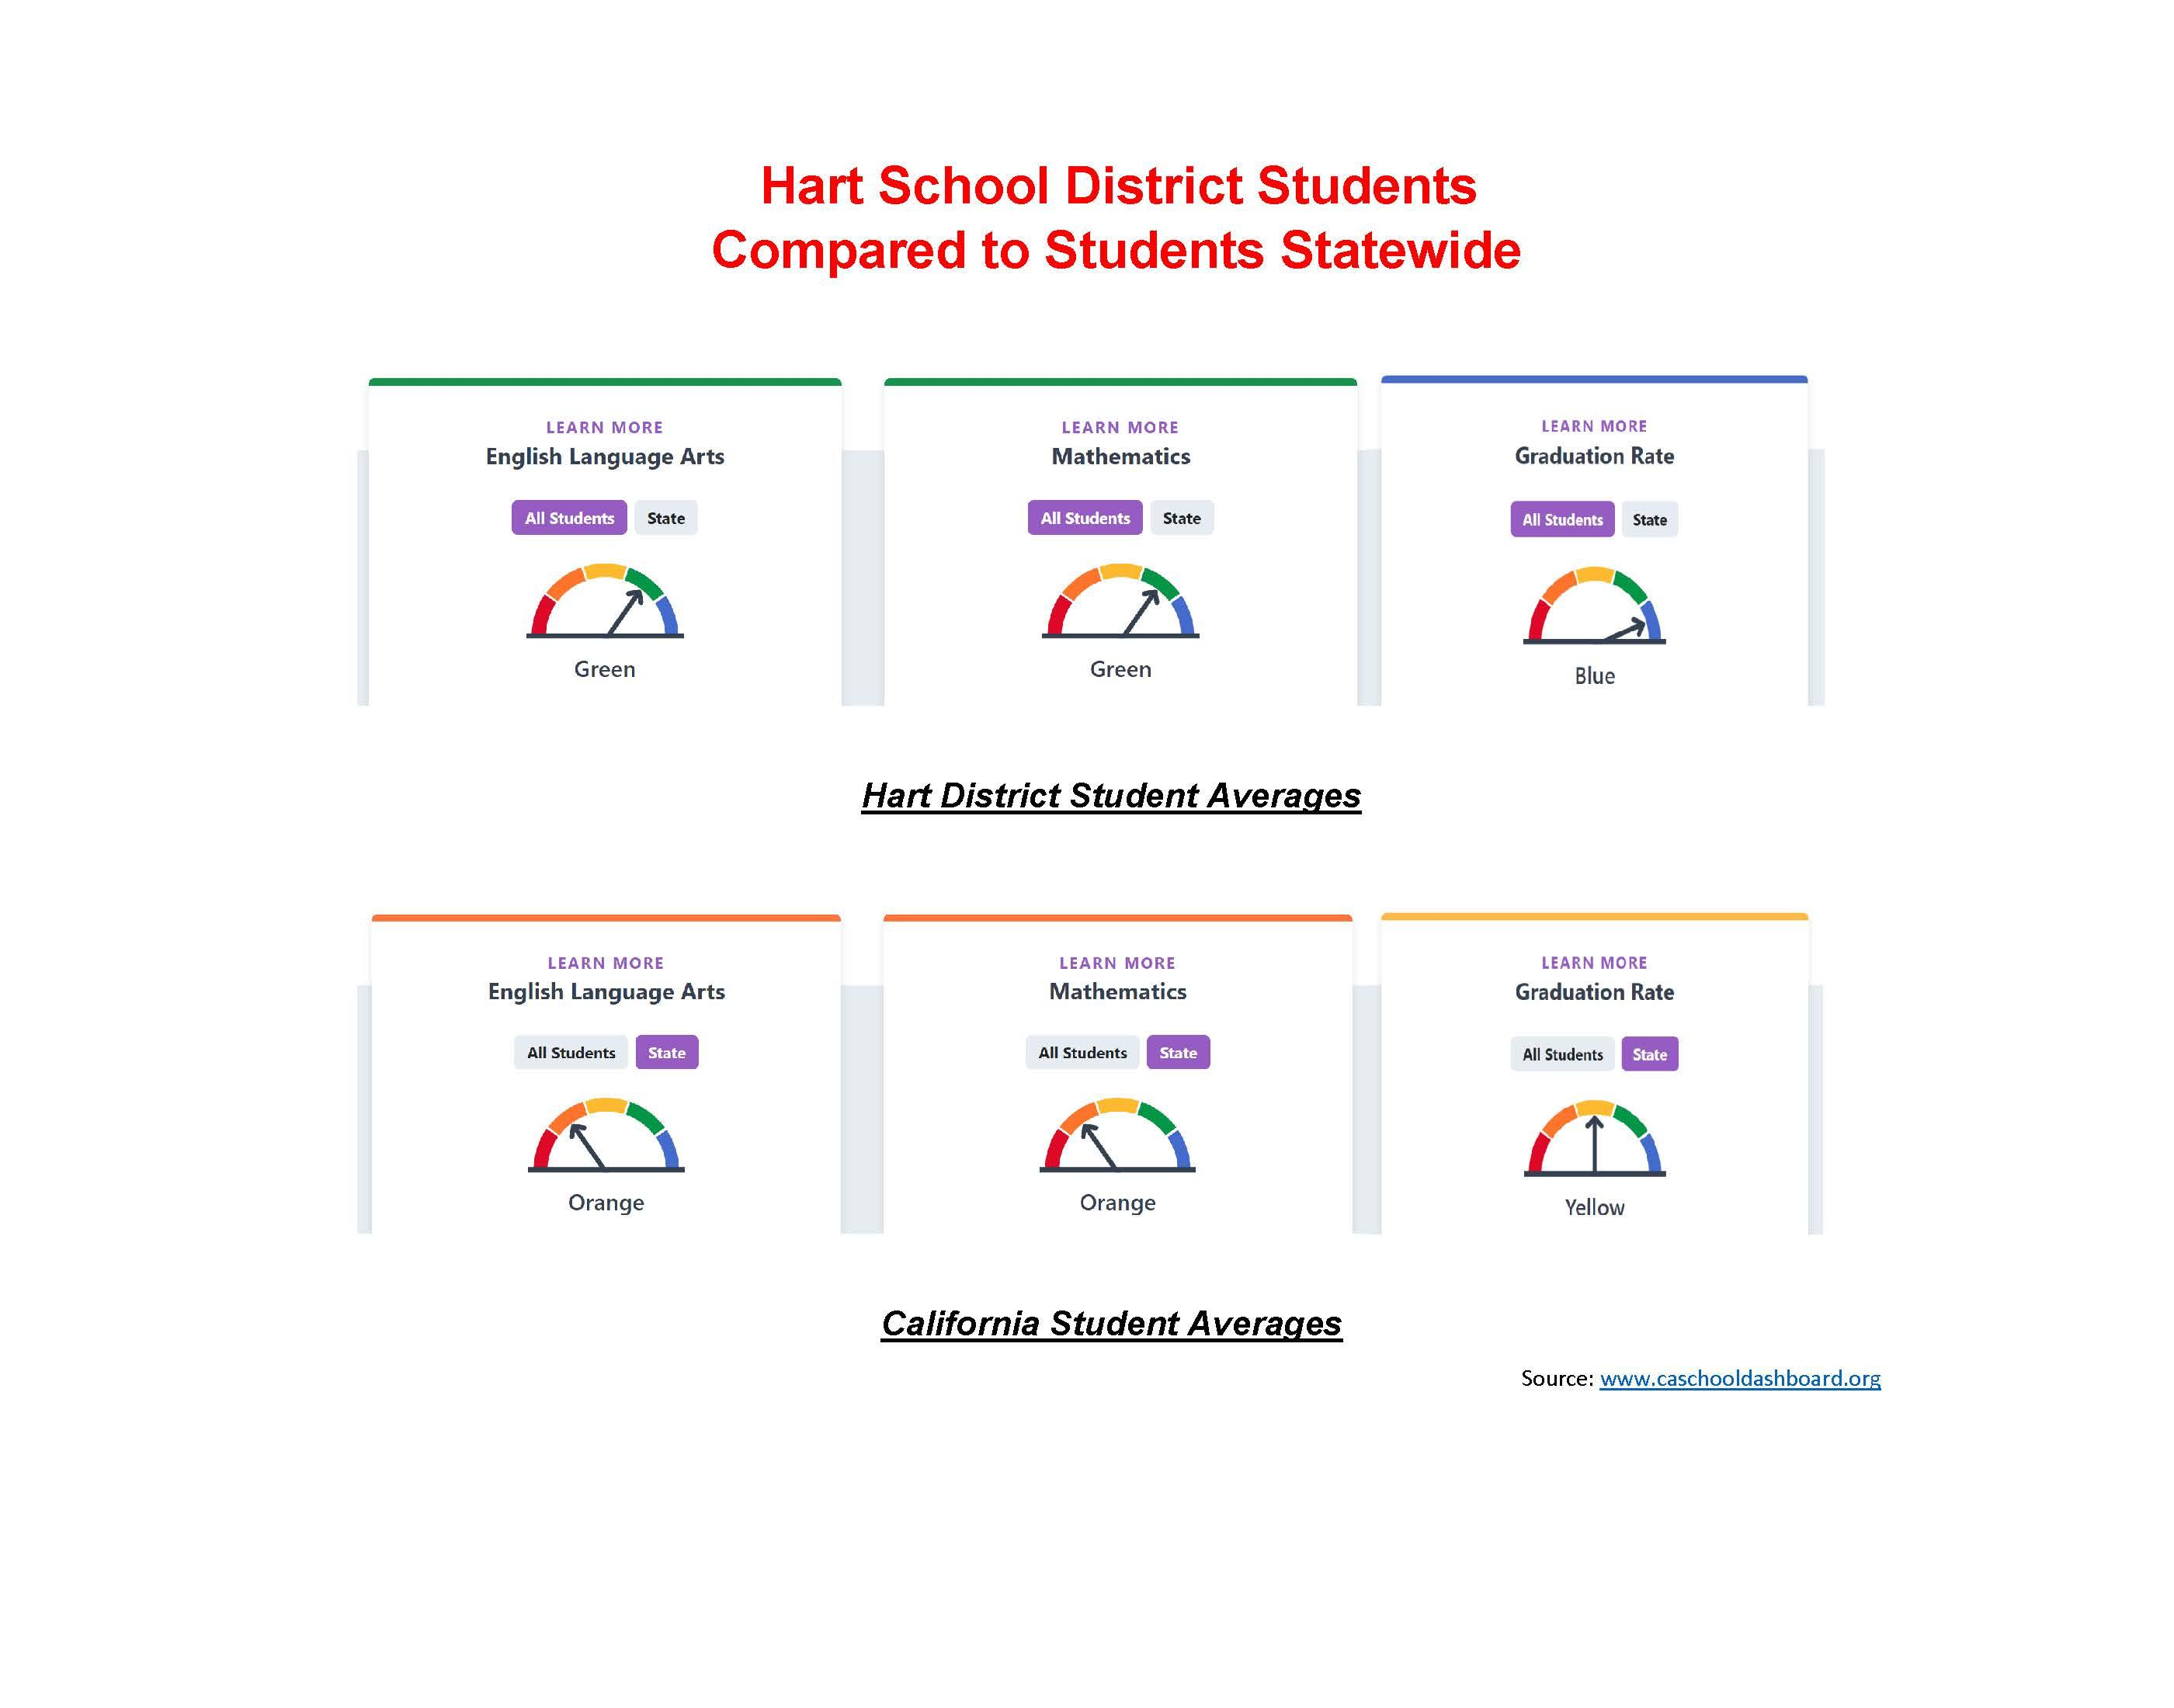 Hart School District Students Compared to Students Statewide. Hart District Student Averages: English Language Arts - Green, Mathematics - Green, Graduation Rate - Blue; California Student Averages: English Language Arts - Orange, Mathematics - Orange, Graduation Rate - Yellow